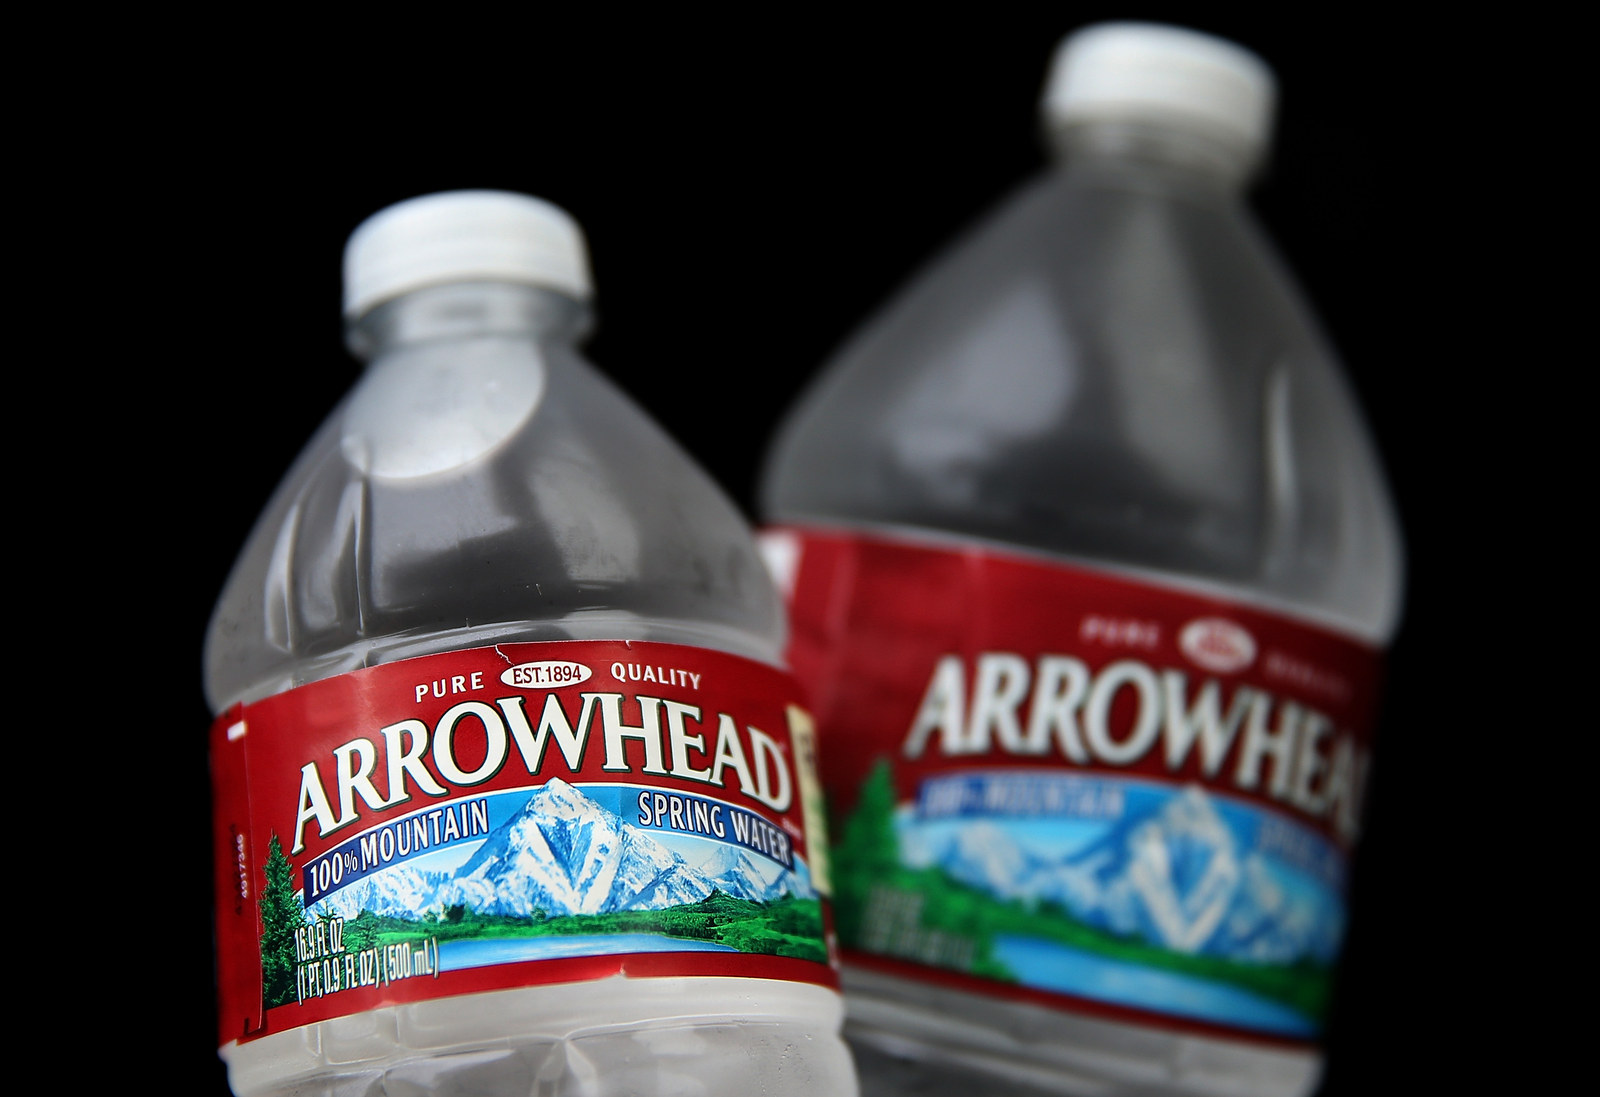 Nestlé Is Illegally Bottling Water Amid California's Drought, Lawsuit Says